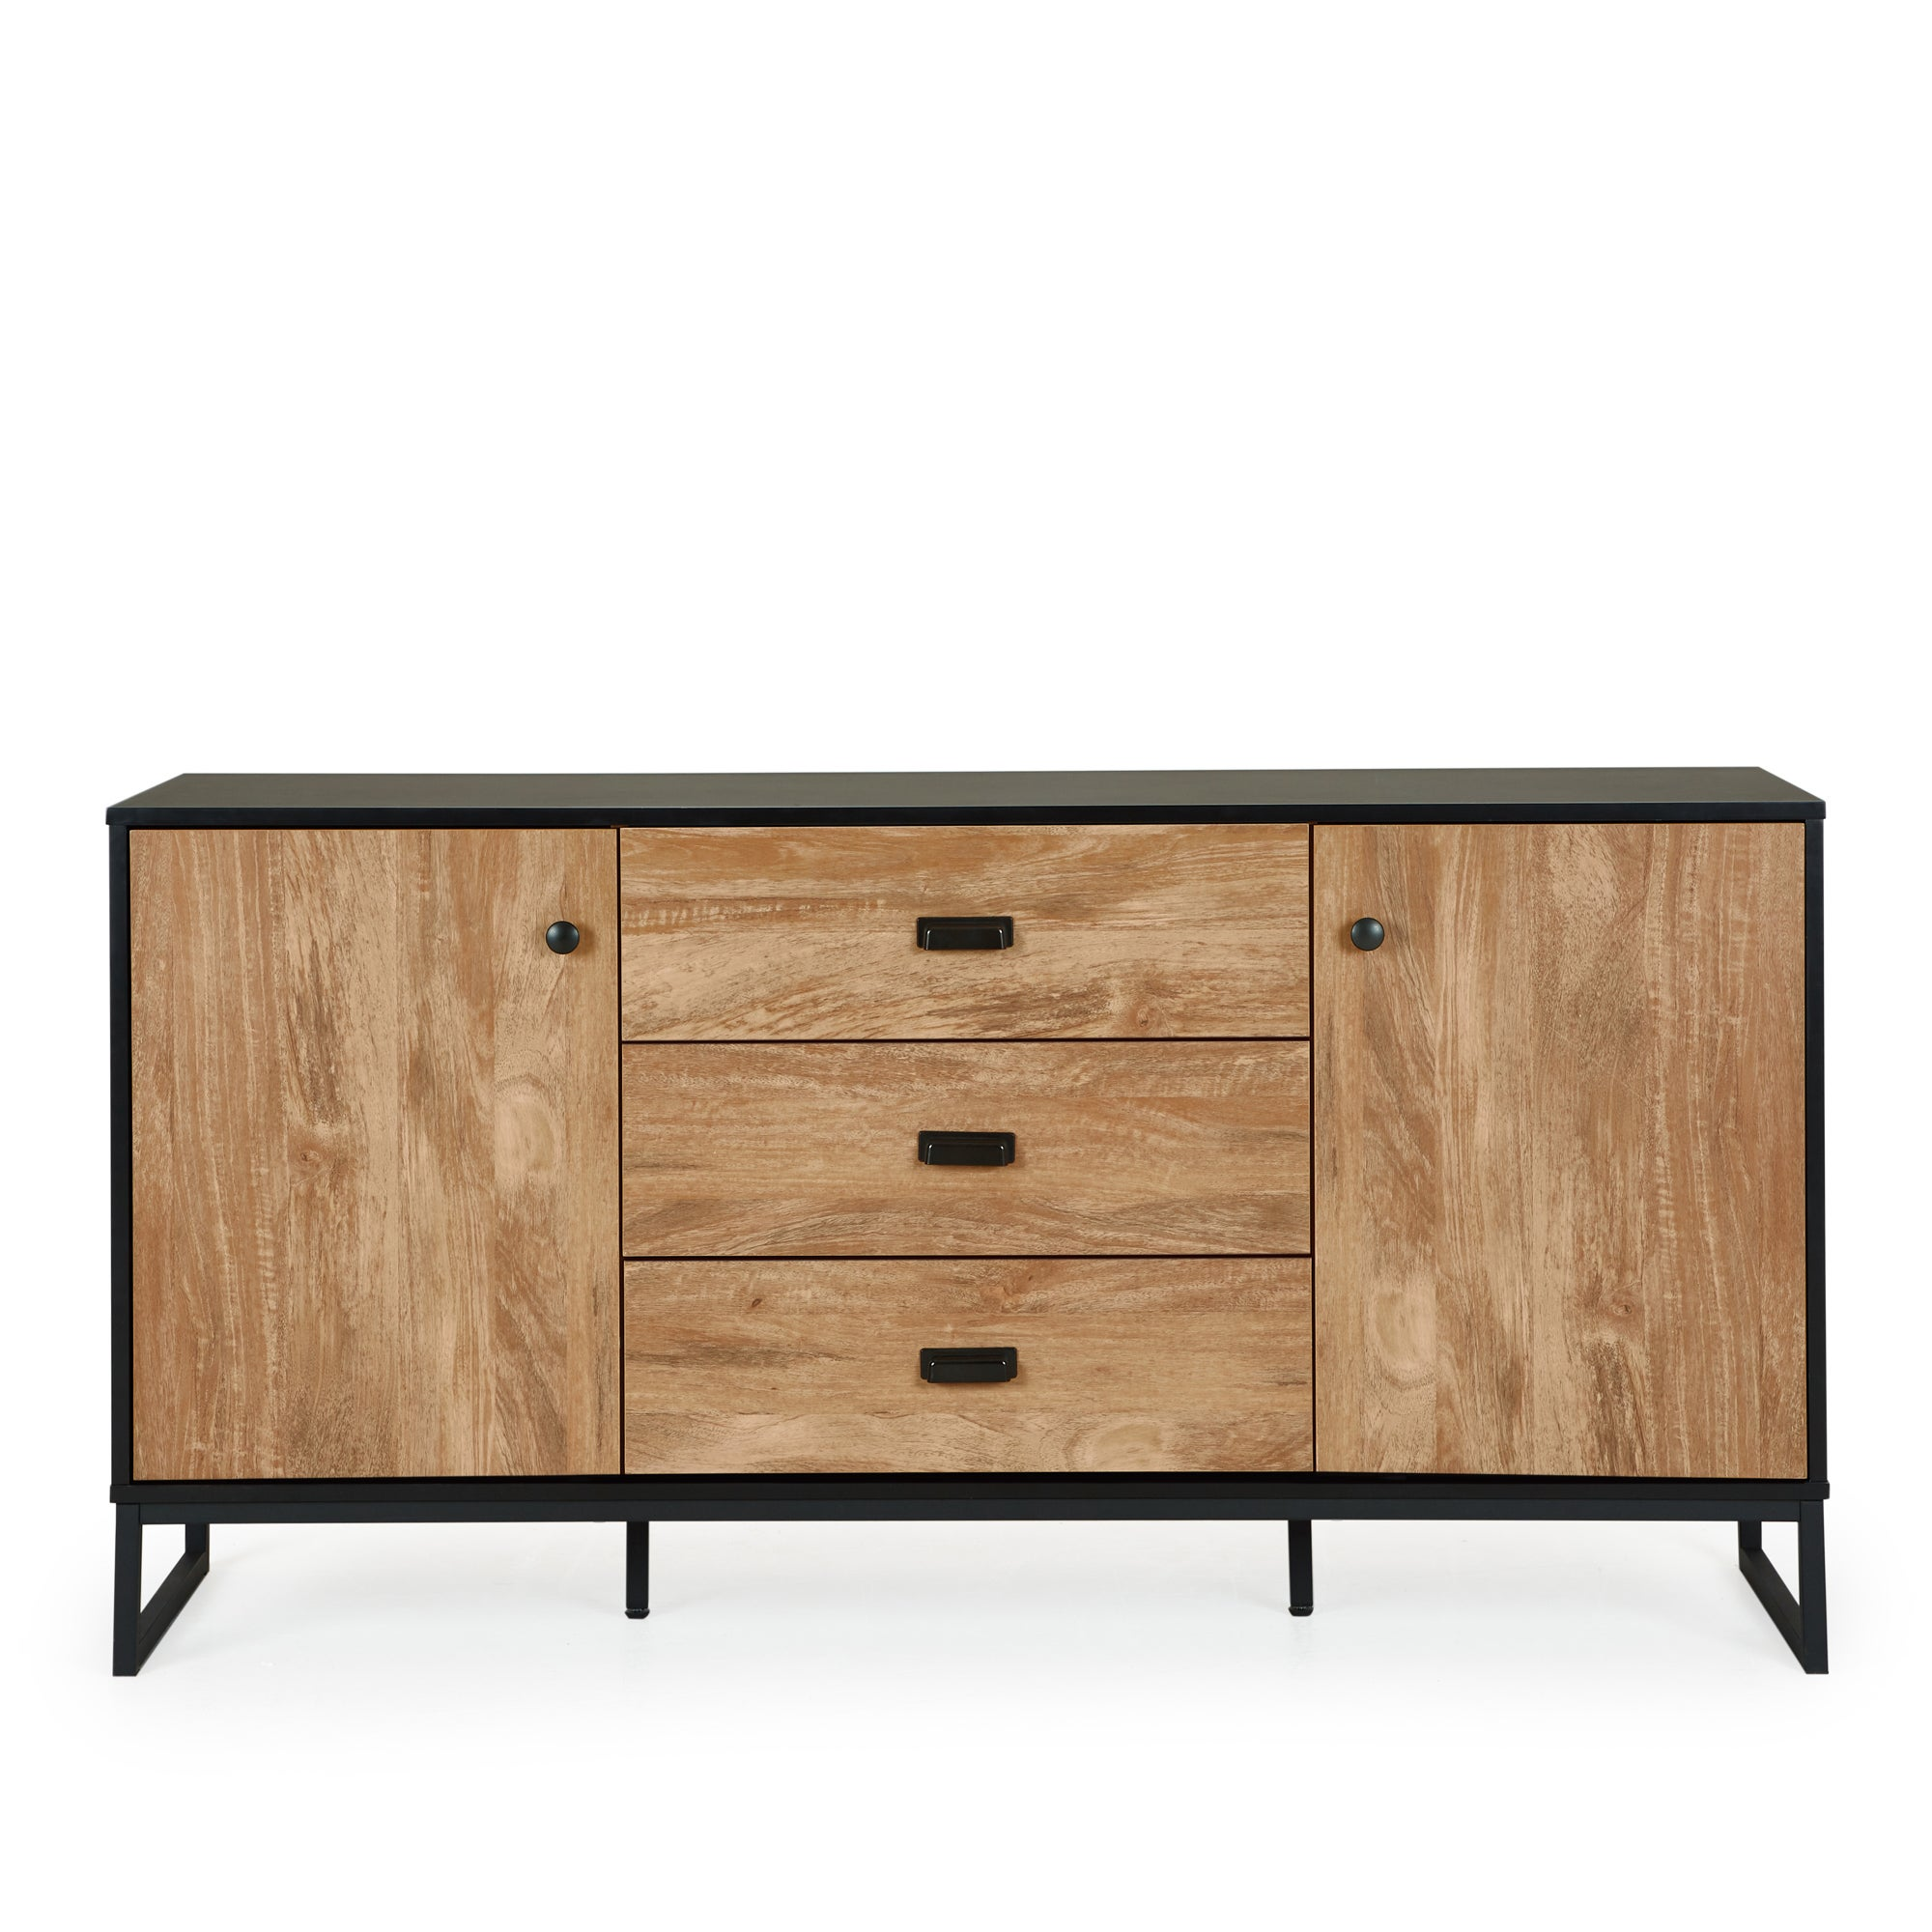 Greenwich Large Sideboard Black and Brown